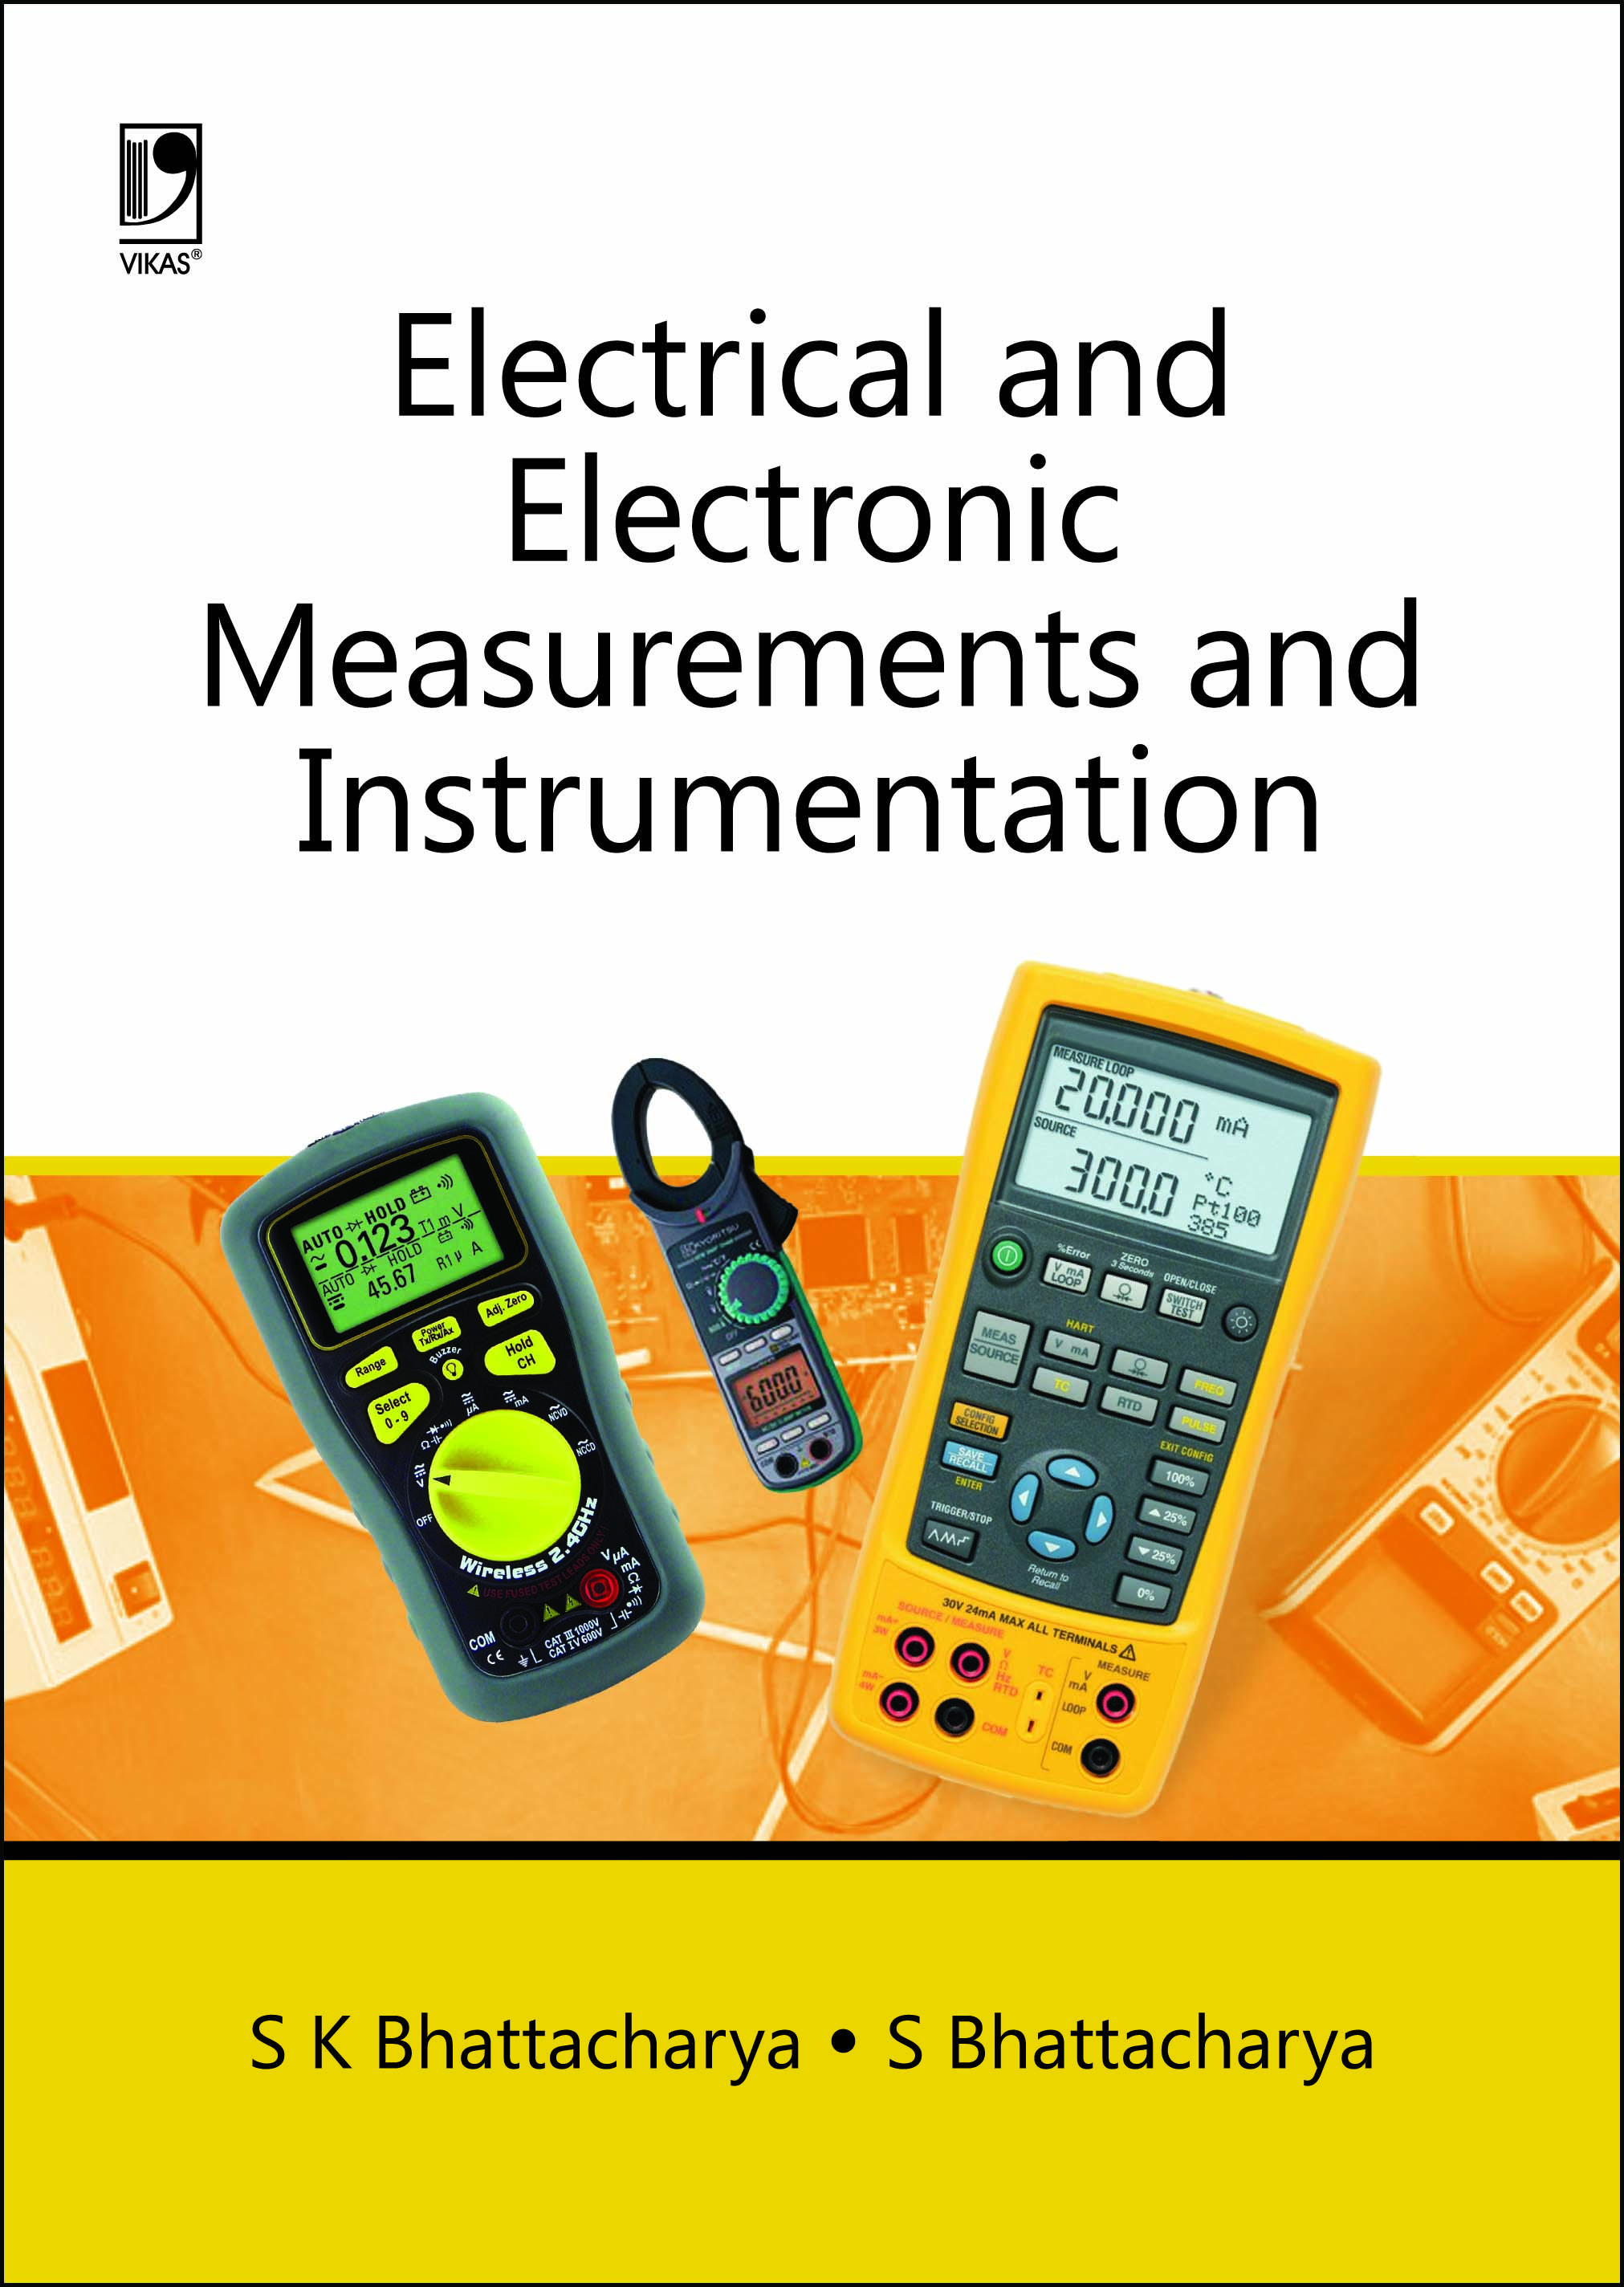 ELECTRICAL AND ELECTRONIC MEASUREMENTS AND INSTRUMENTATION by  S K Bhattacharya